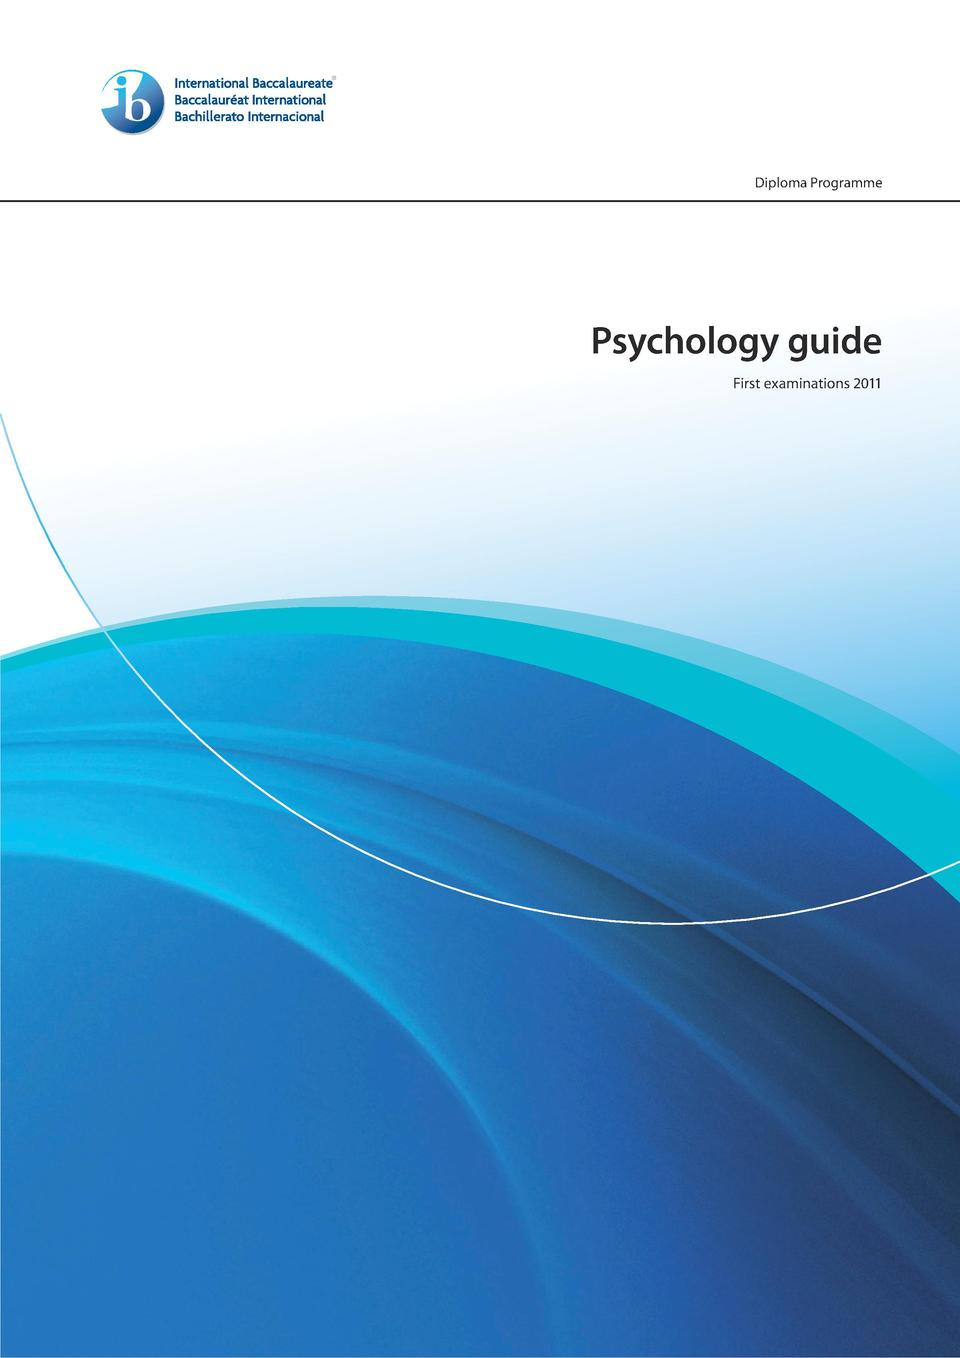 Diploma Programme  Psychology guide First examinations 2011